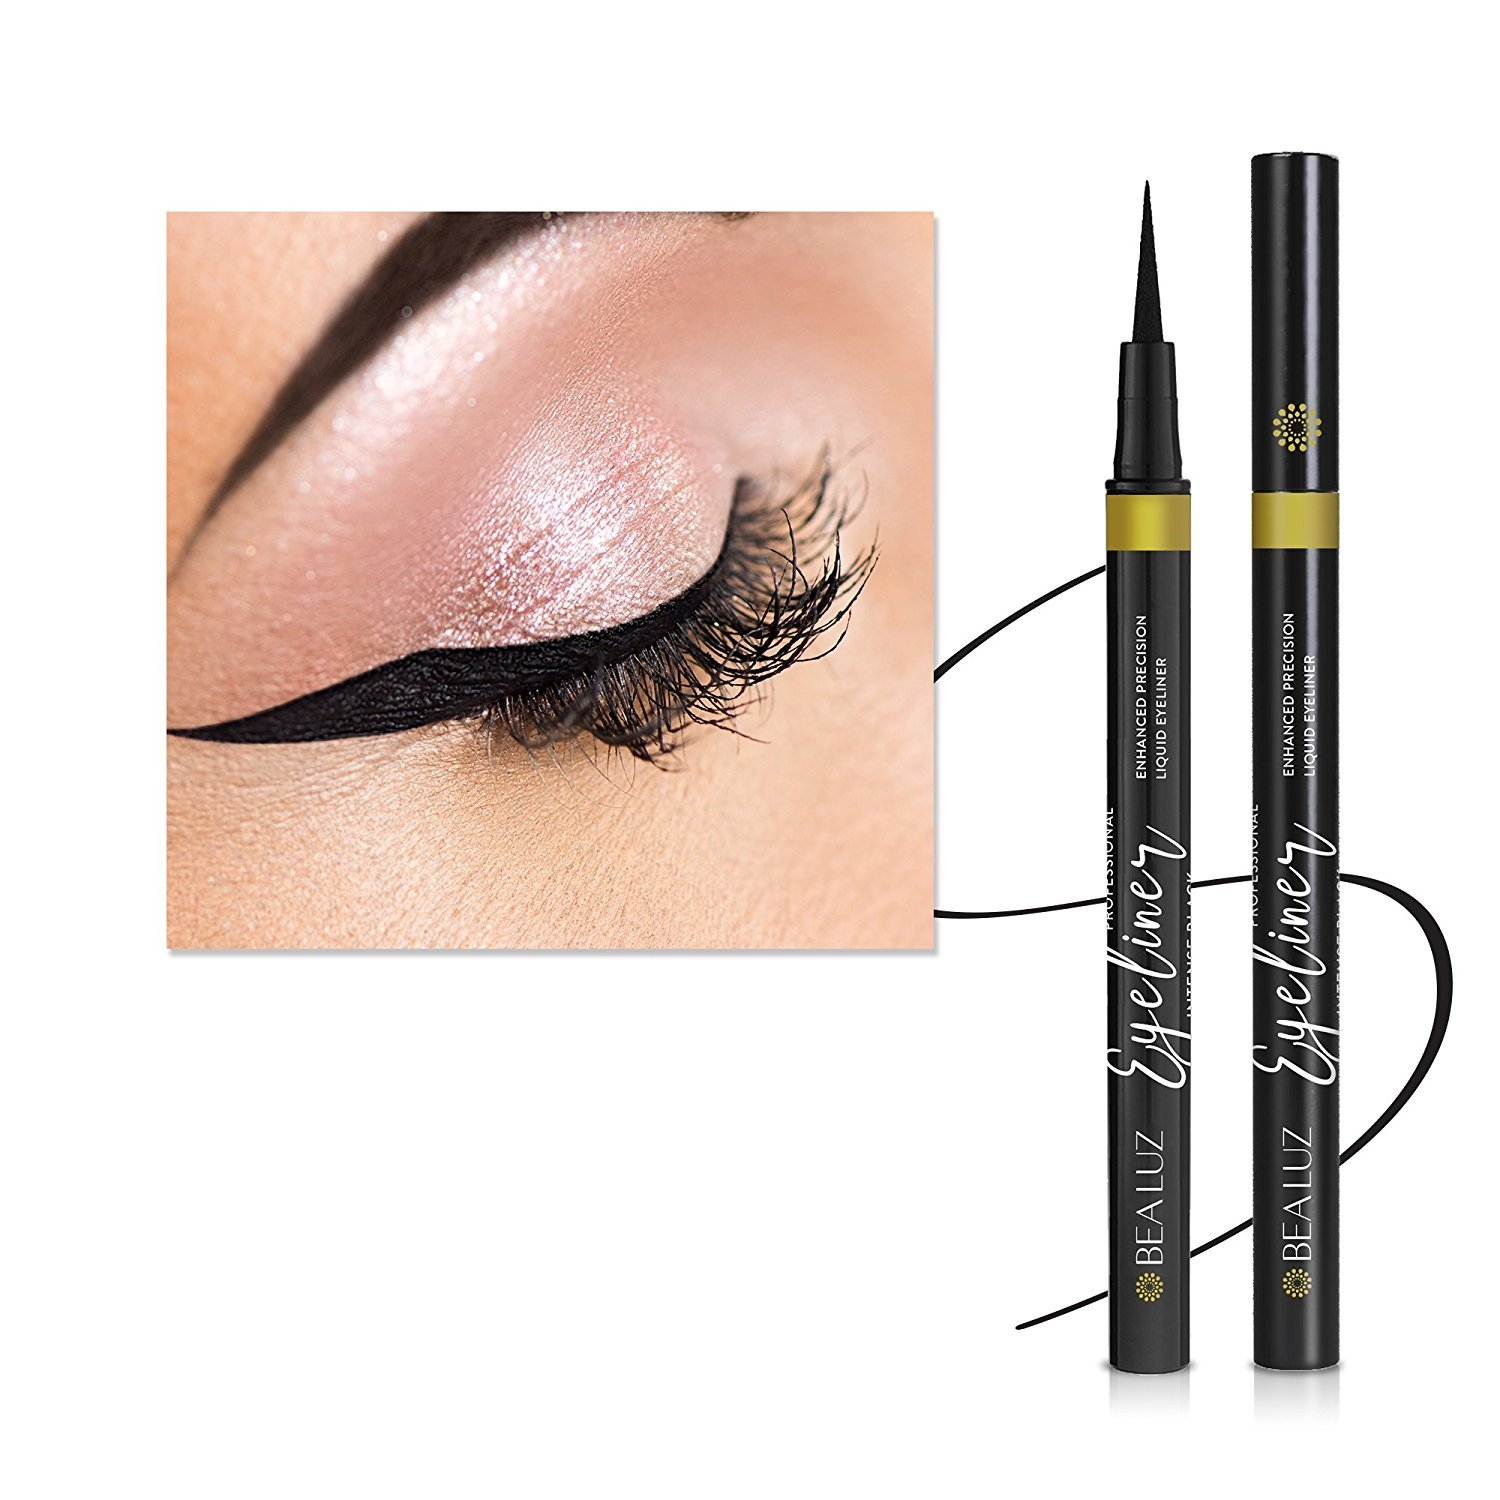 Amazon.com: Extra Waterproof Protective Liquid Eyeliner Winged Eyeliner Stamp Waterproof Long Lasting Liquid Eyeliner JBEL-01: Beauty